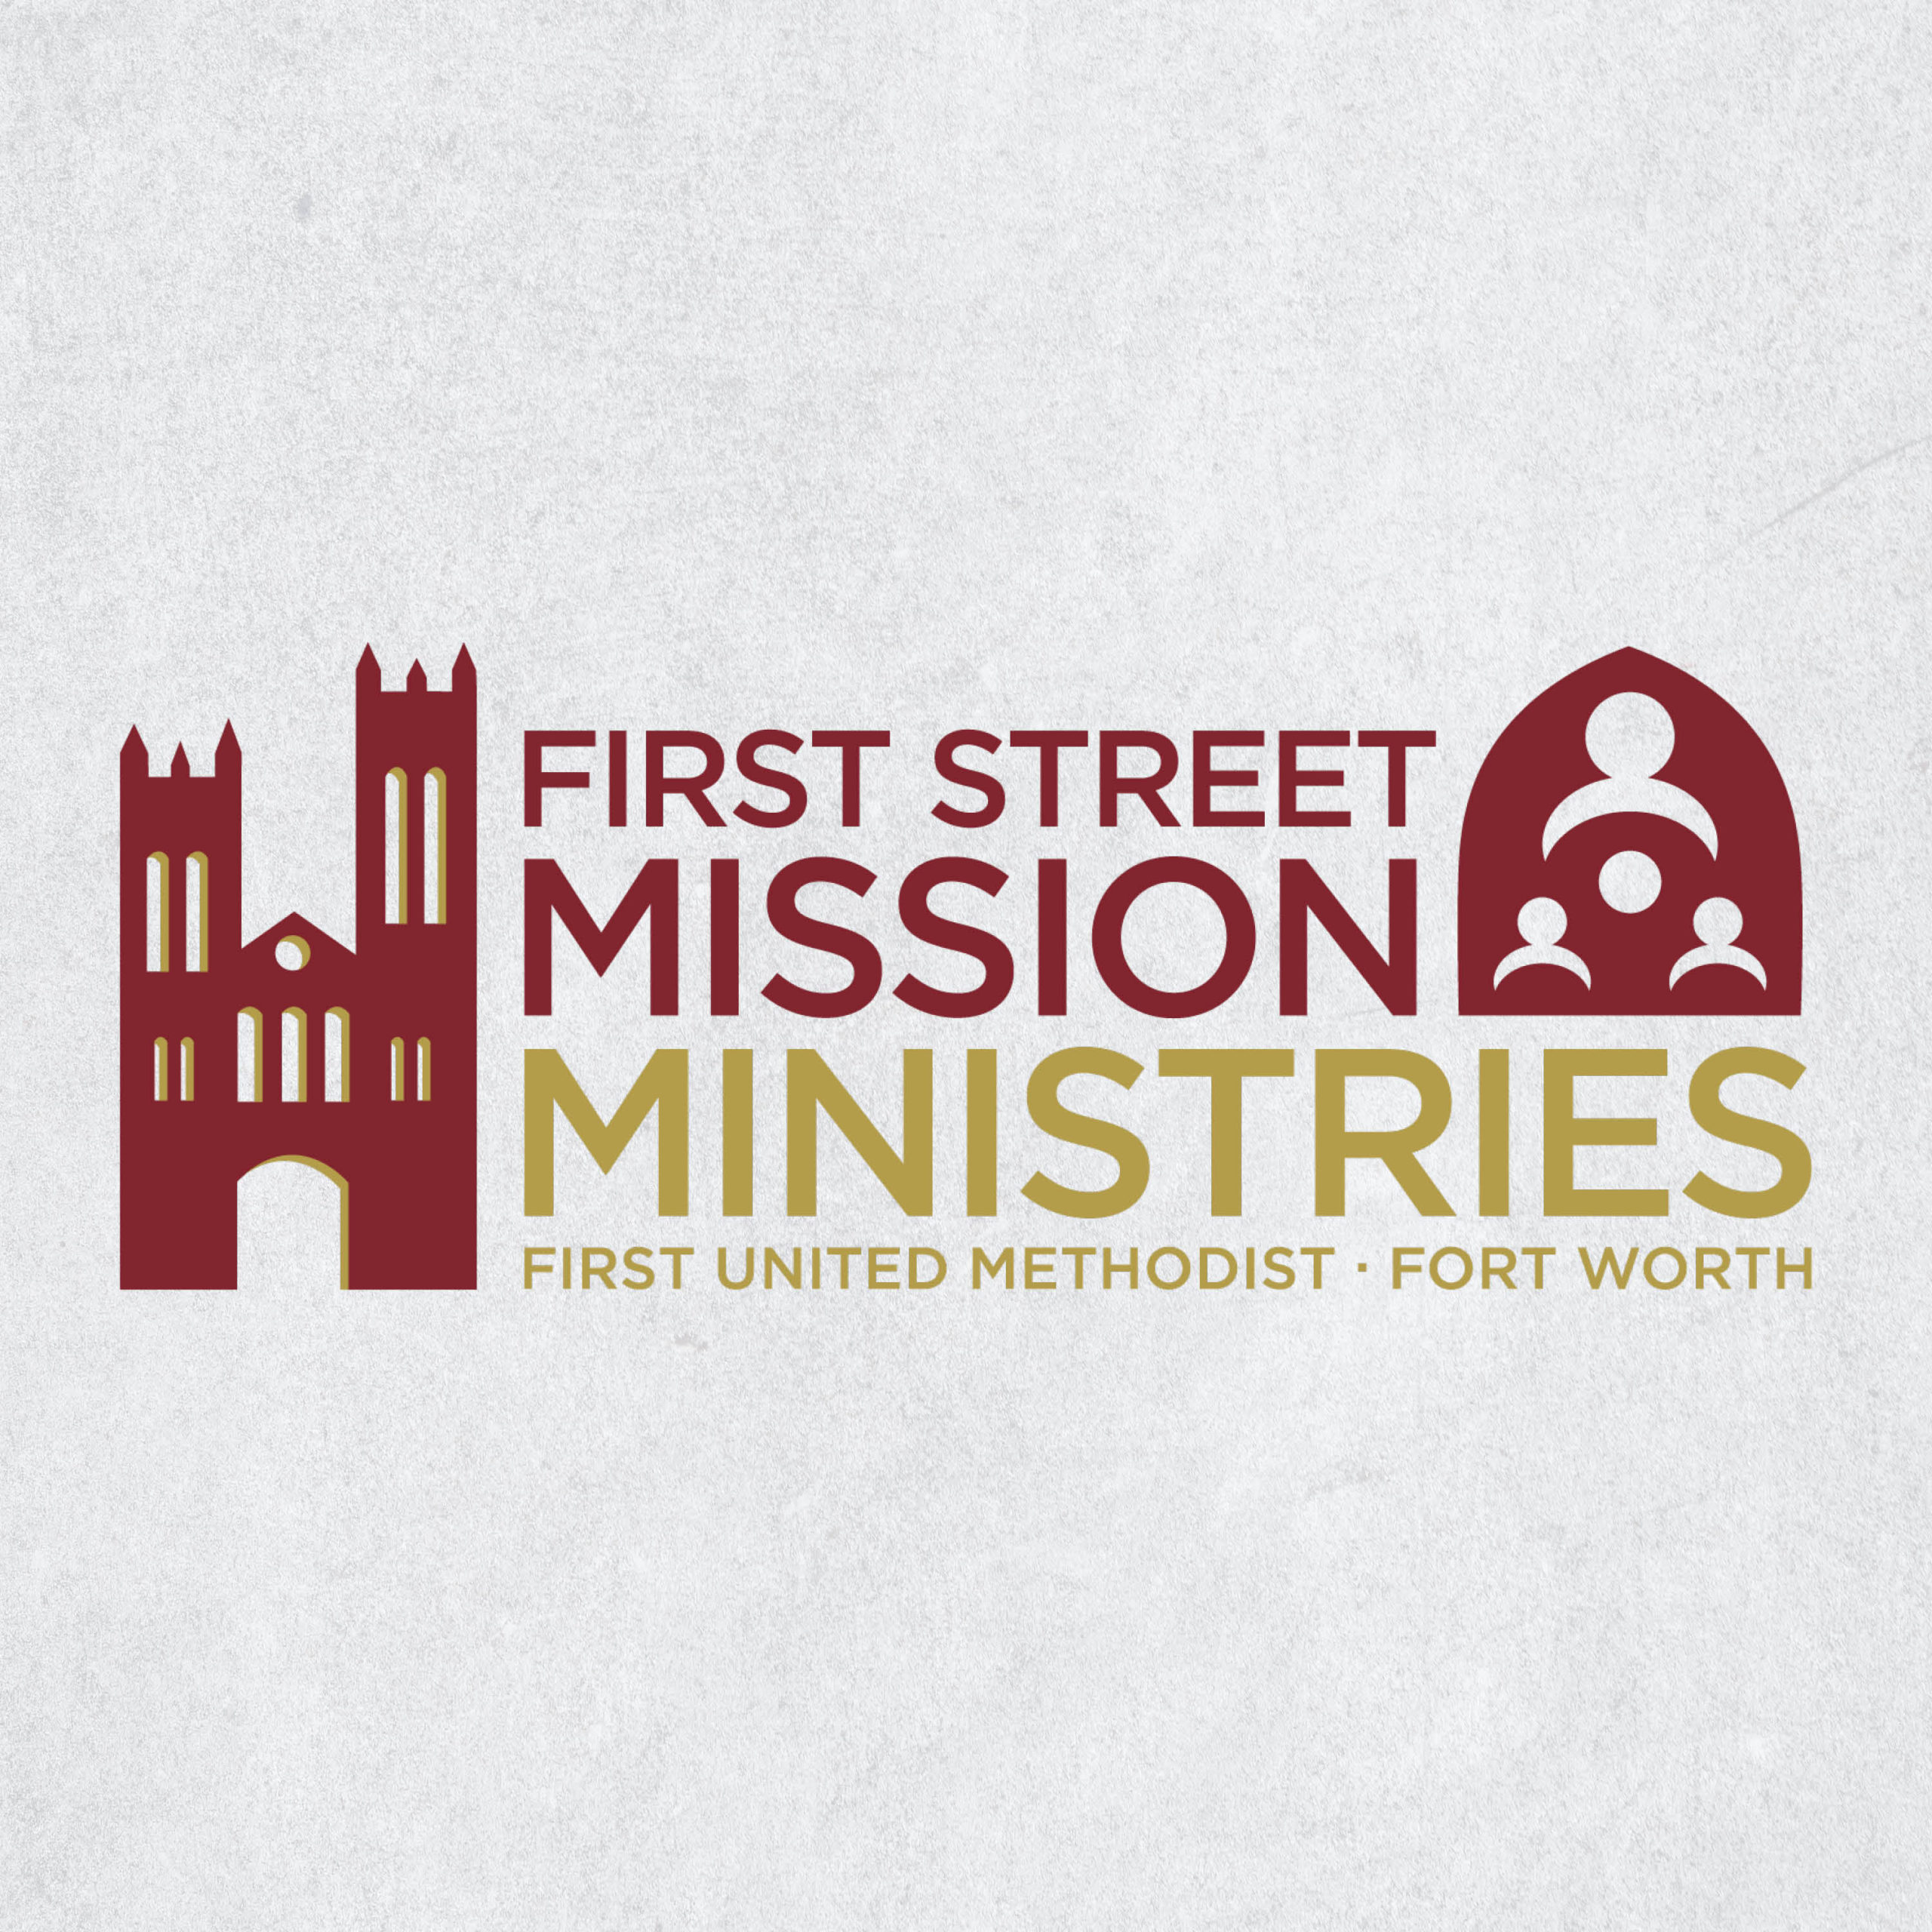 First Street Methodist Mission: Seeing Ourselves in the Eyes of Others